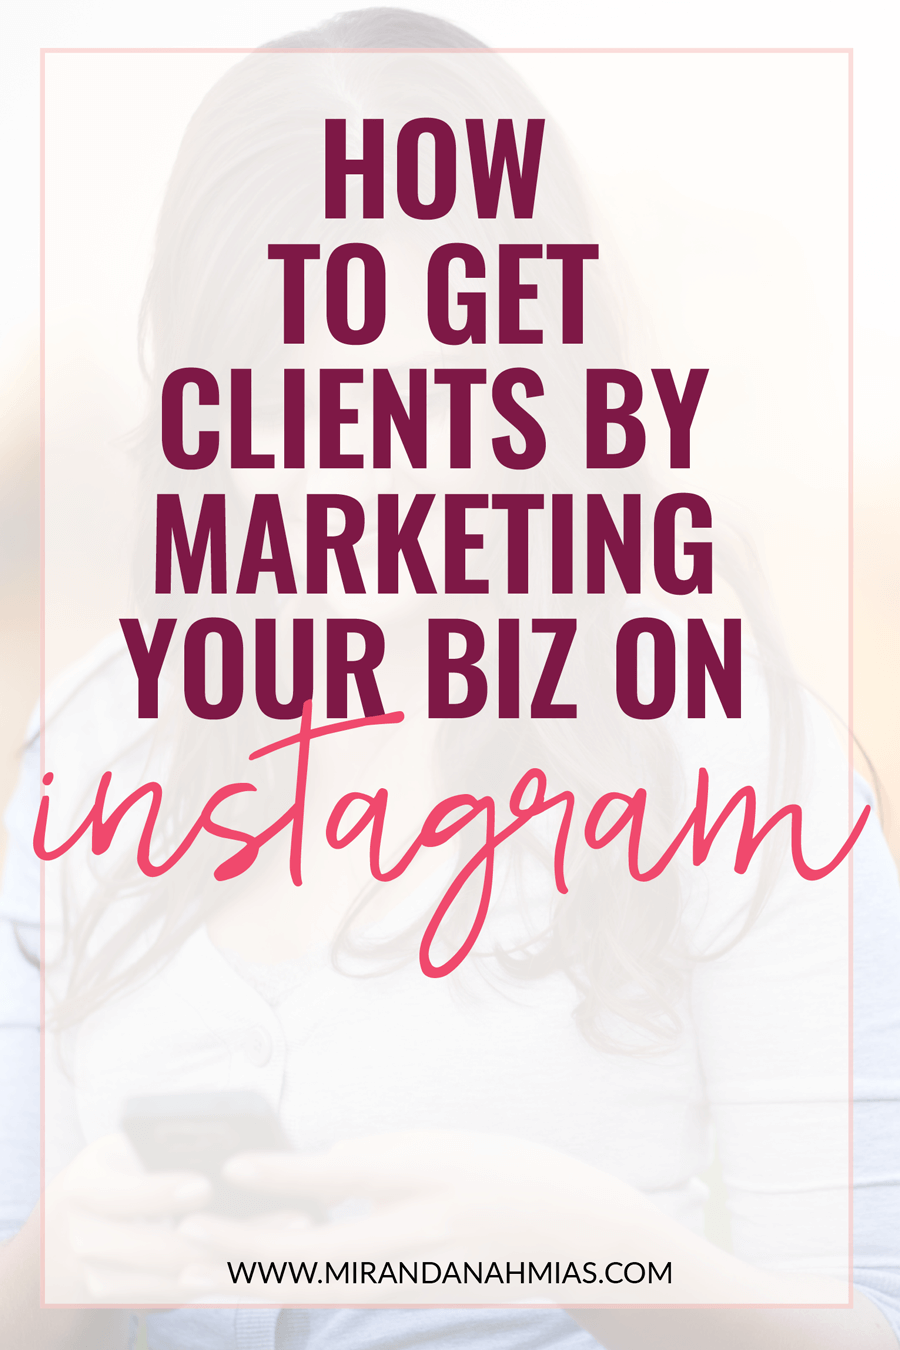 Want to use Instagram to get clients? Here's exactly how to get clients by marketing on Instagram | Miranda Nahmias & Co. — Systematic Marketing for Female Online Service Providers